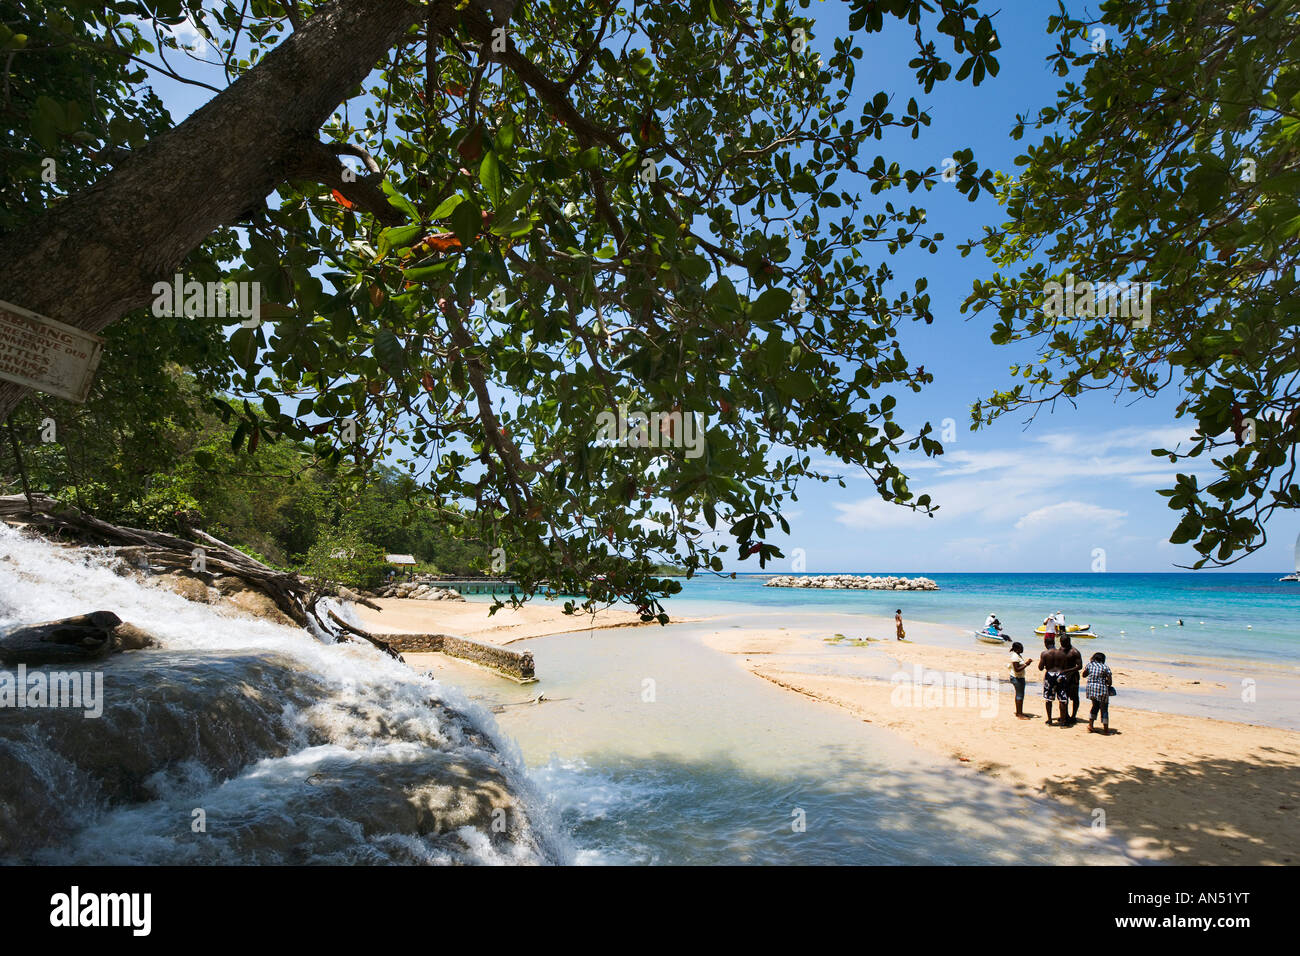 Outlet to the sea, Dunns River Falls, Ocho Rios, Jamaica, Caribbean, West Indies - Stock Image